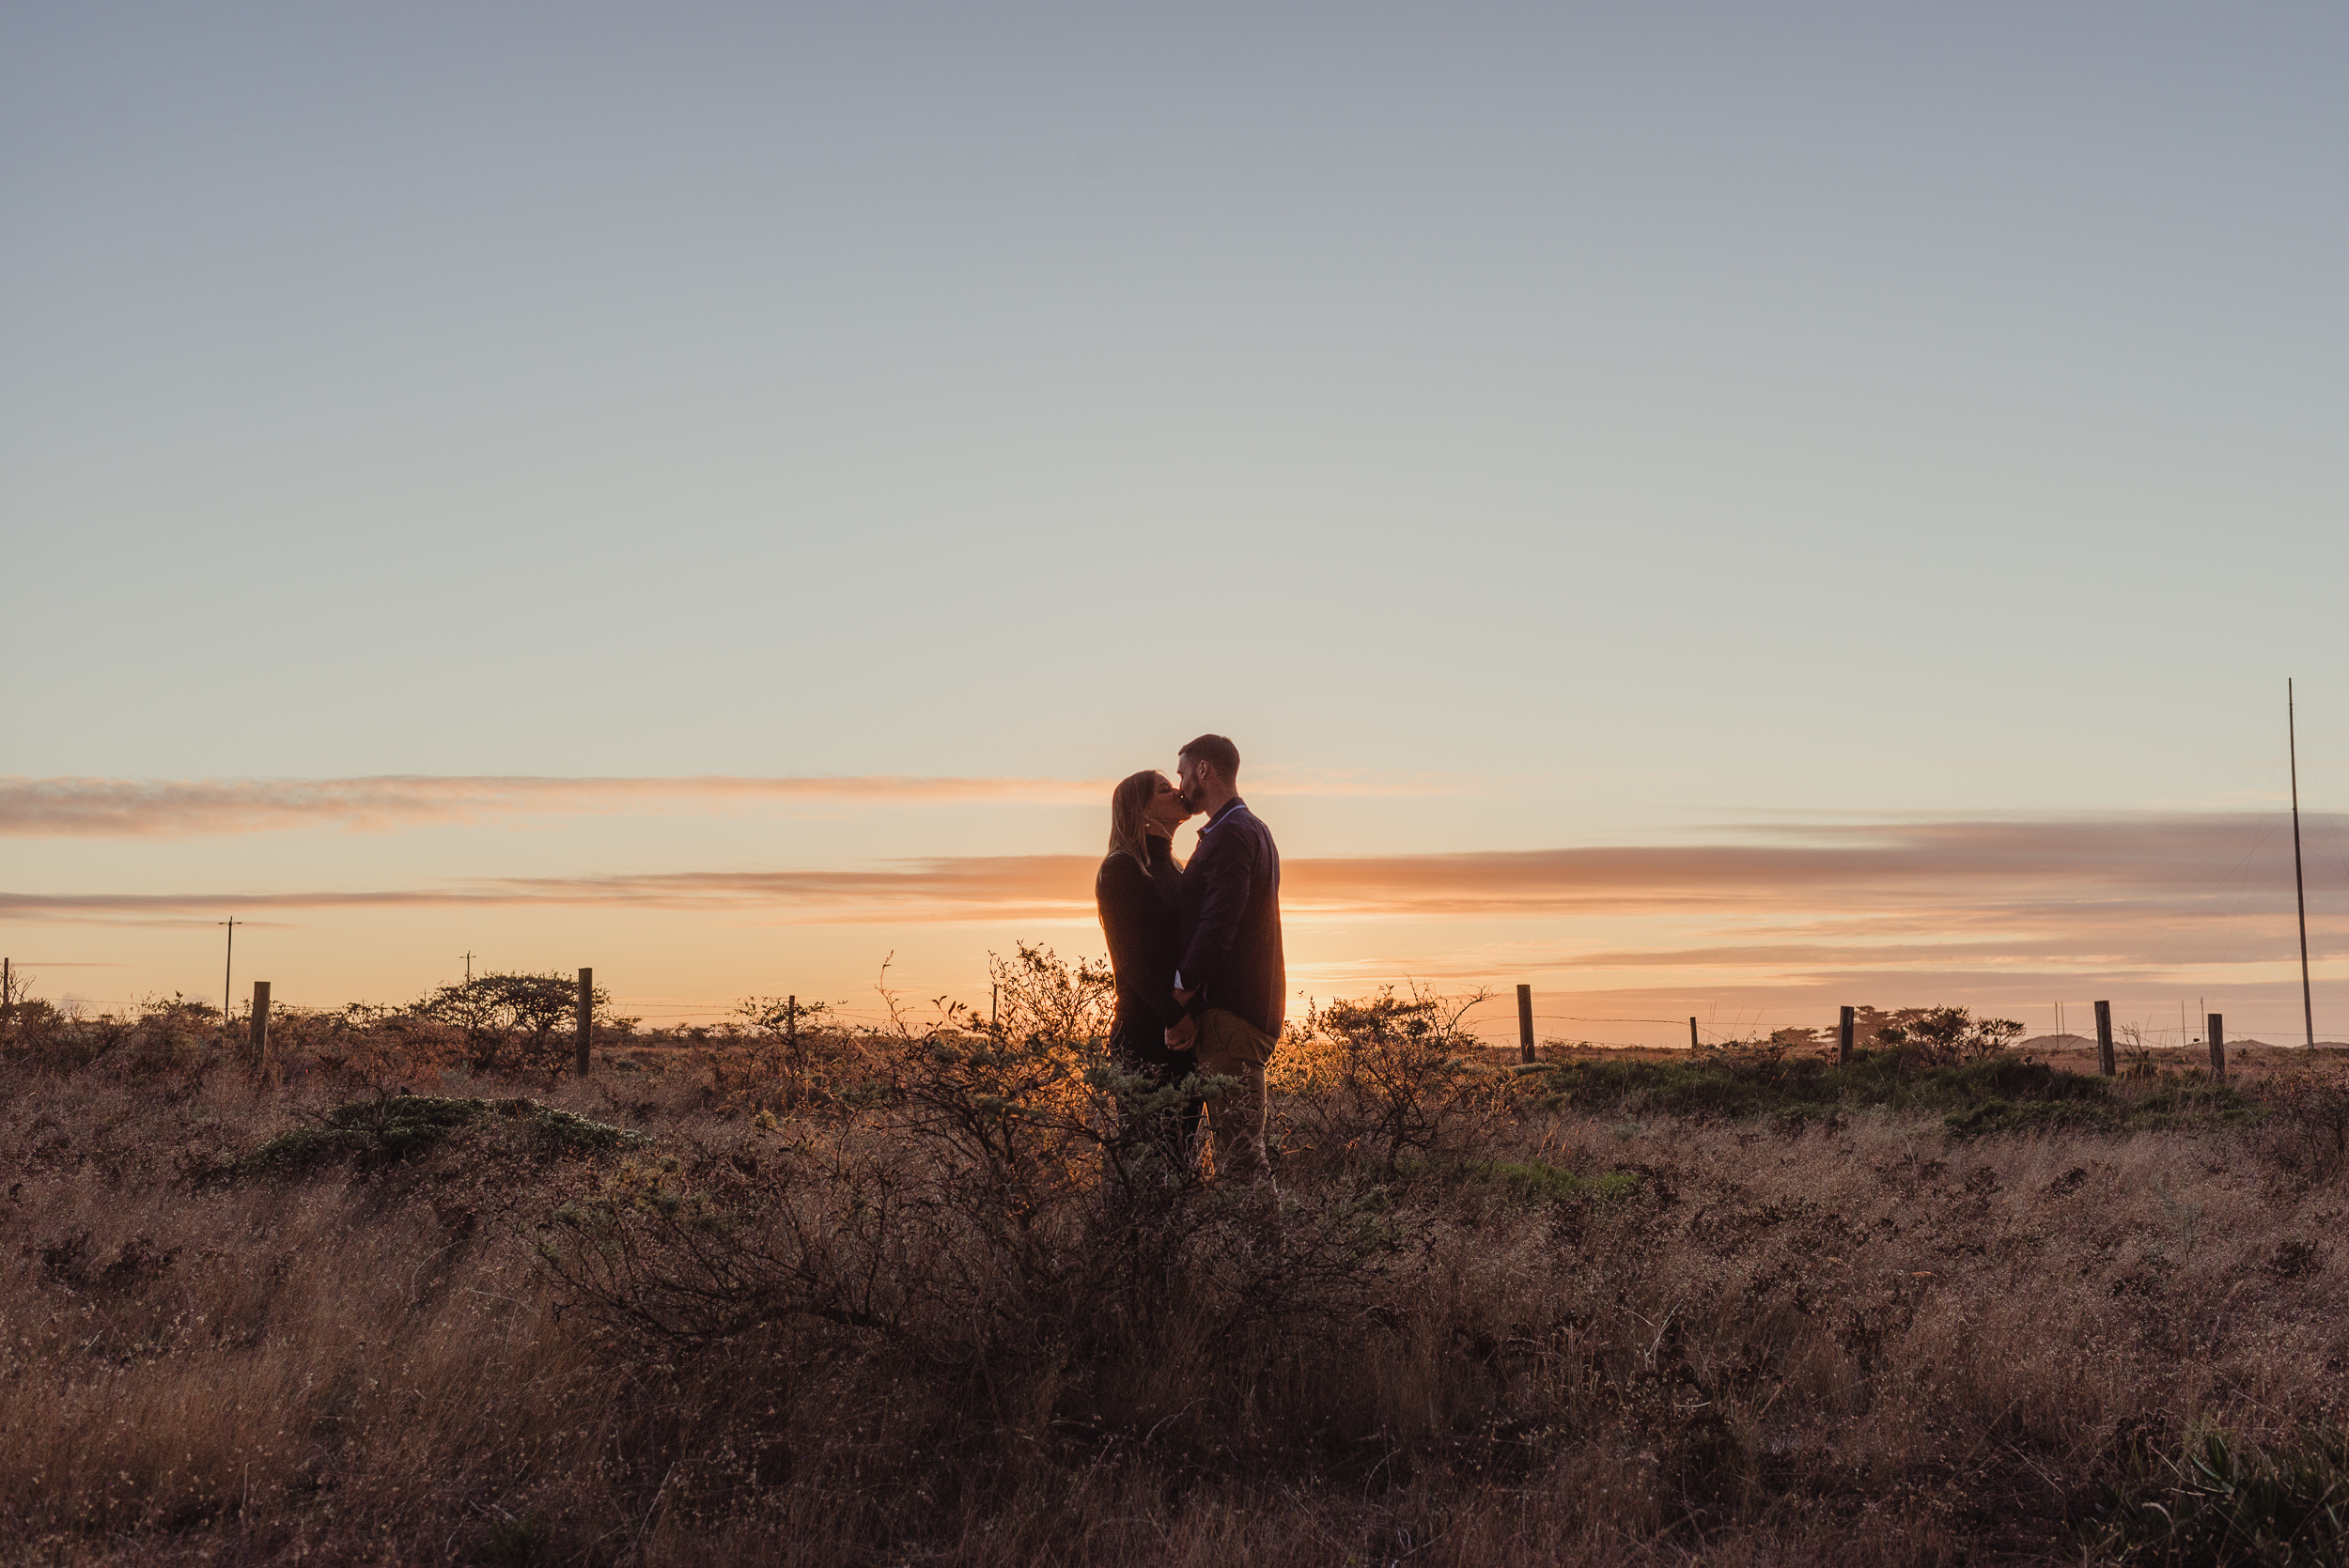 point-reyes-national-seashore-engagement-session-vivianchen-167.jpg